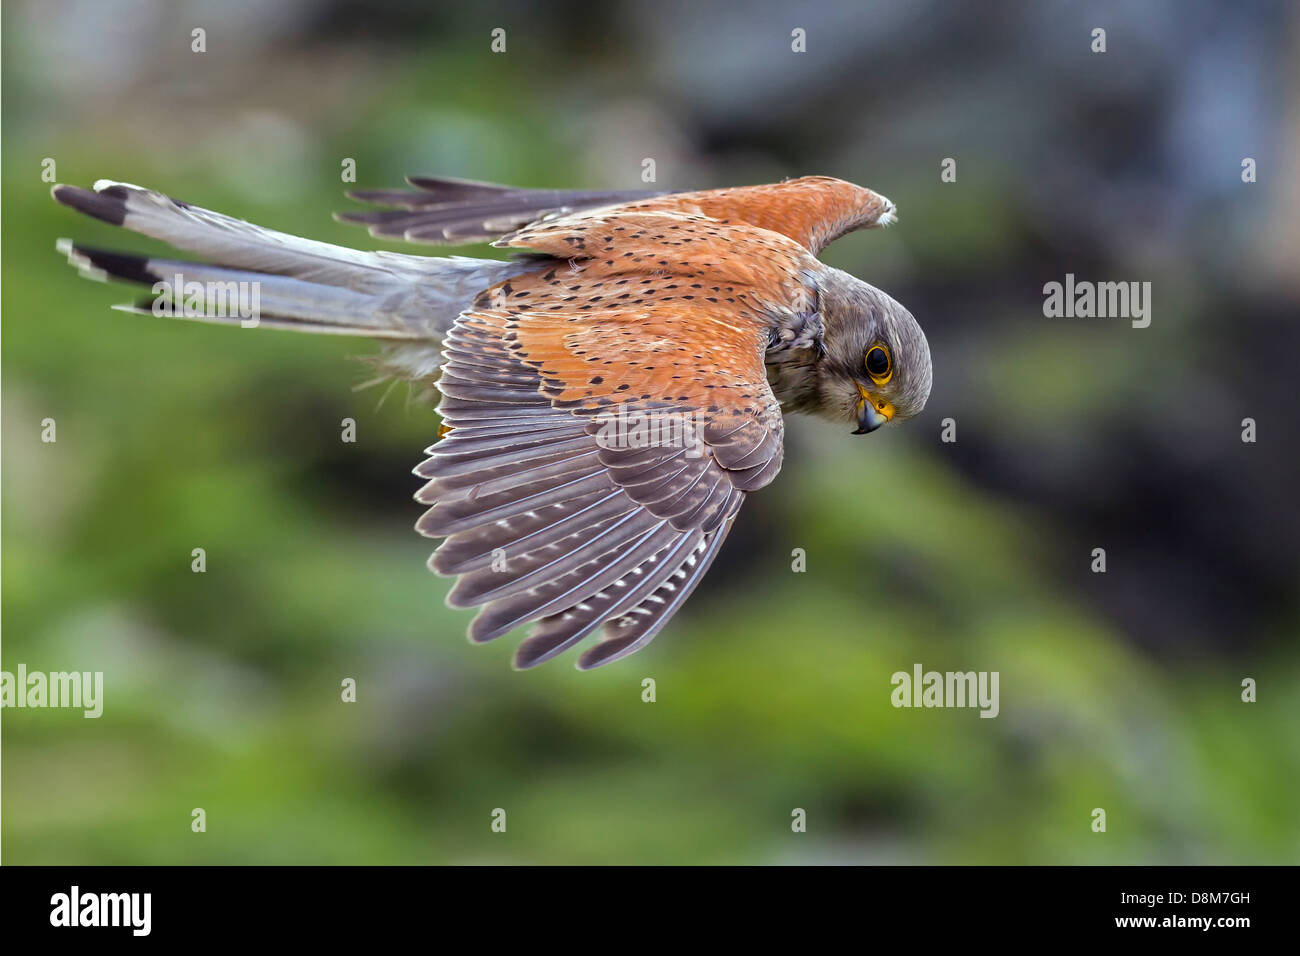 kestrel hovering, turned its head and looked at me then went on with its hunt - Stock Image